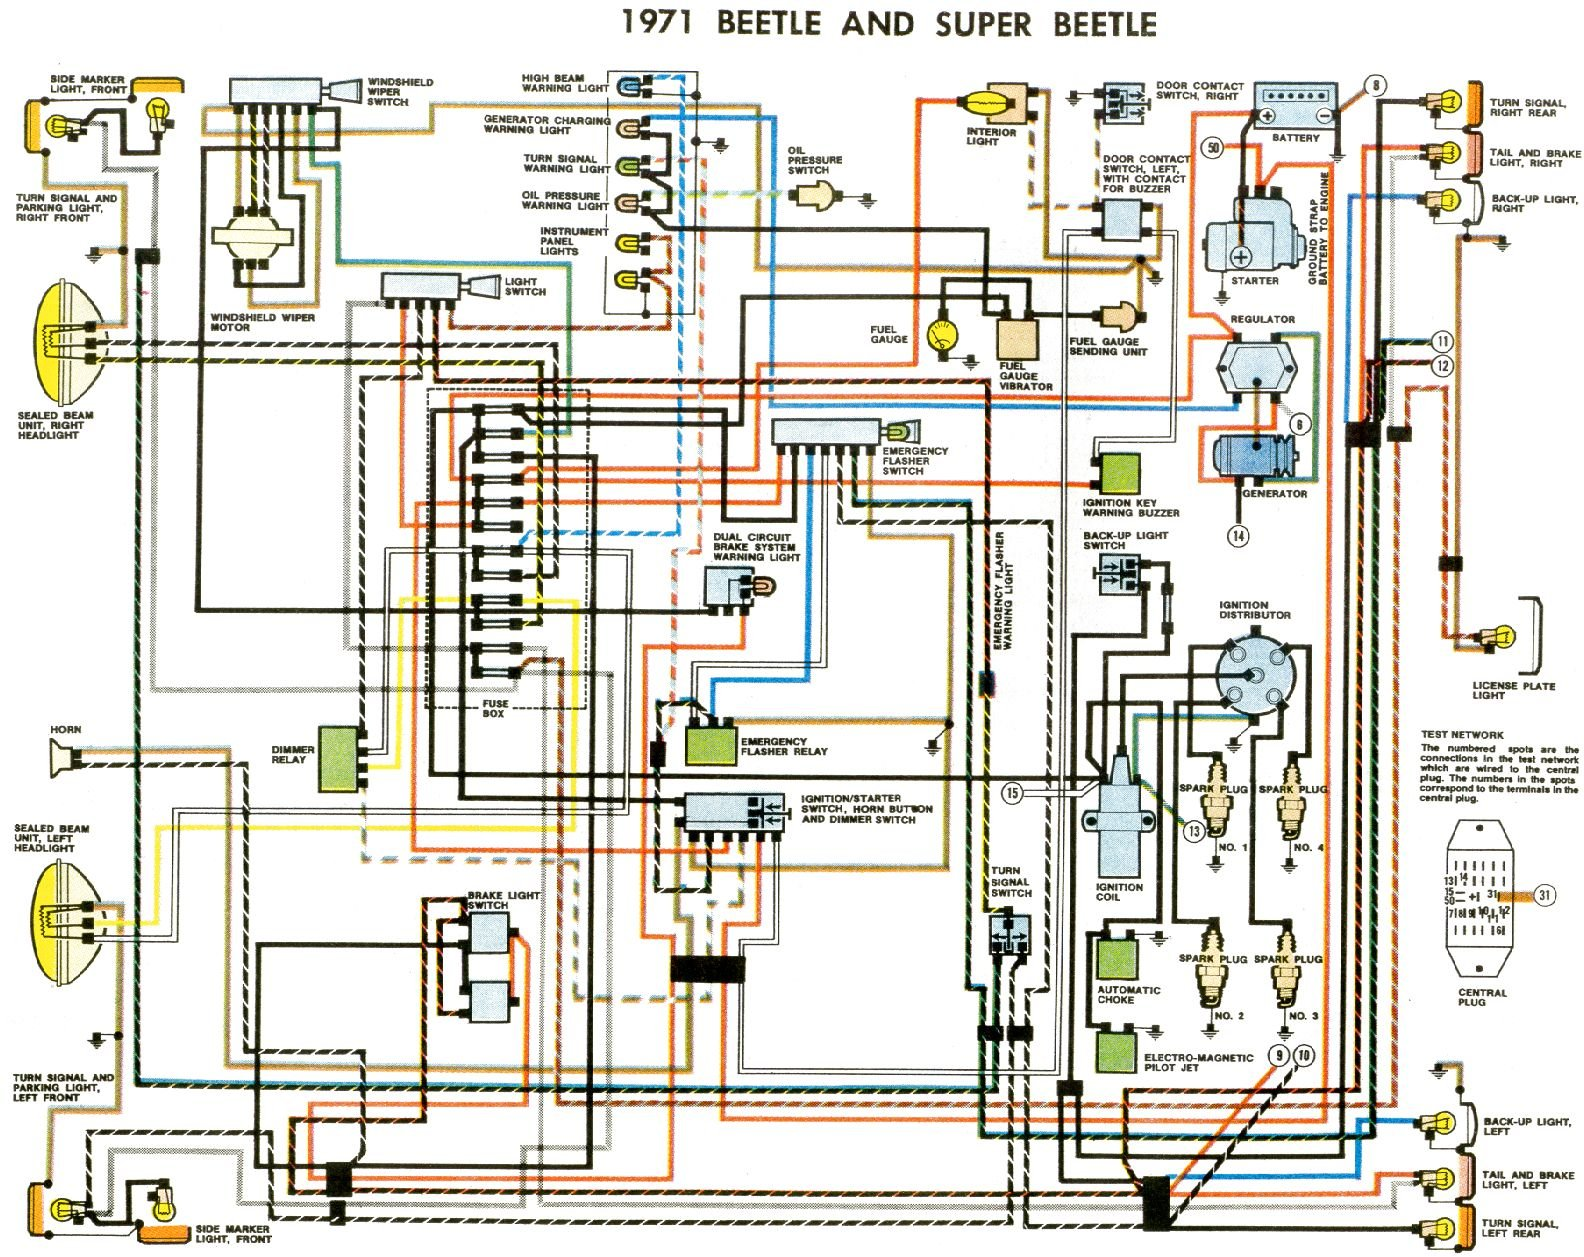 1968 beetle wiring diagram 1968 wiring diagrams online 69 beetle wiring diagram 69 image wiring diagram